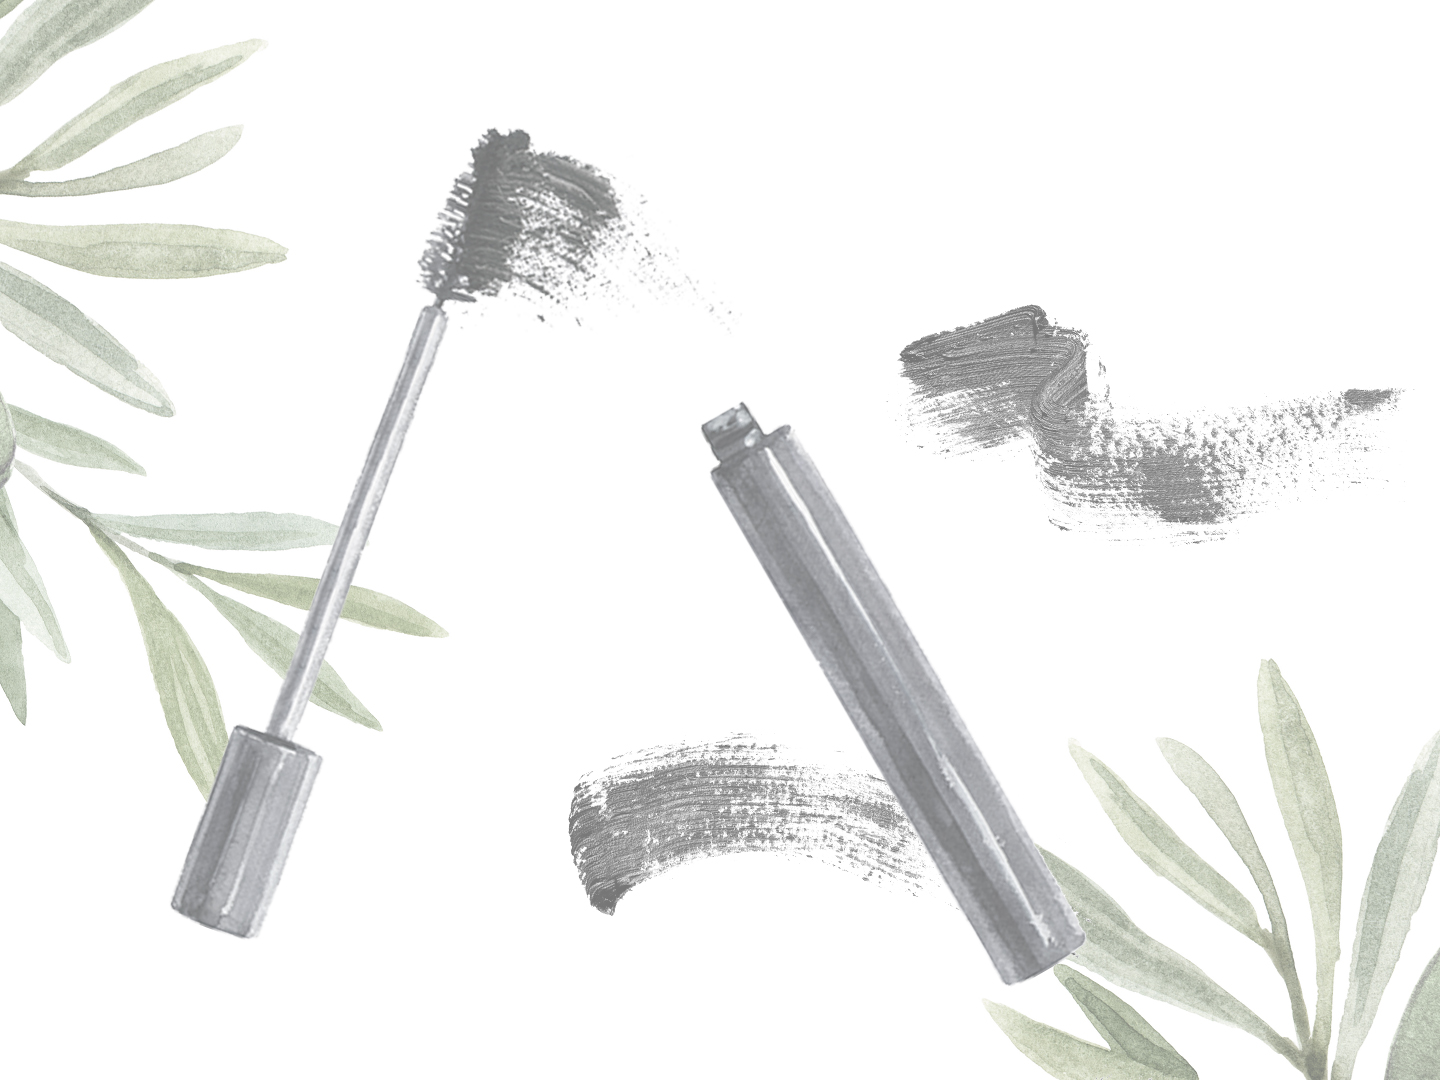 6a6ce93040c With treatments from eyelash extensions to perming, it's fair to say that we're  more lash-obsessed than ever. We've all been there, from bending our mascara  ...